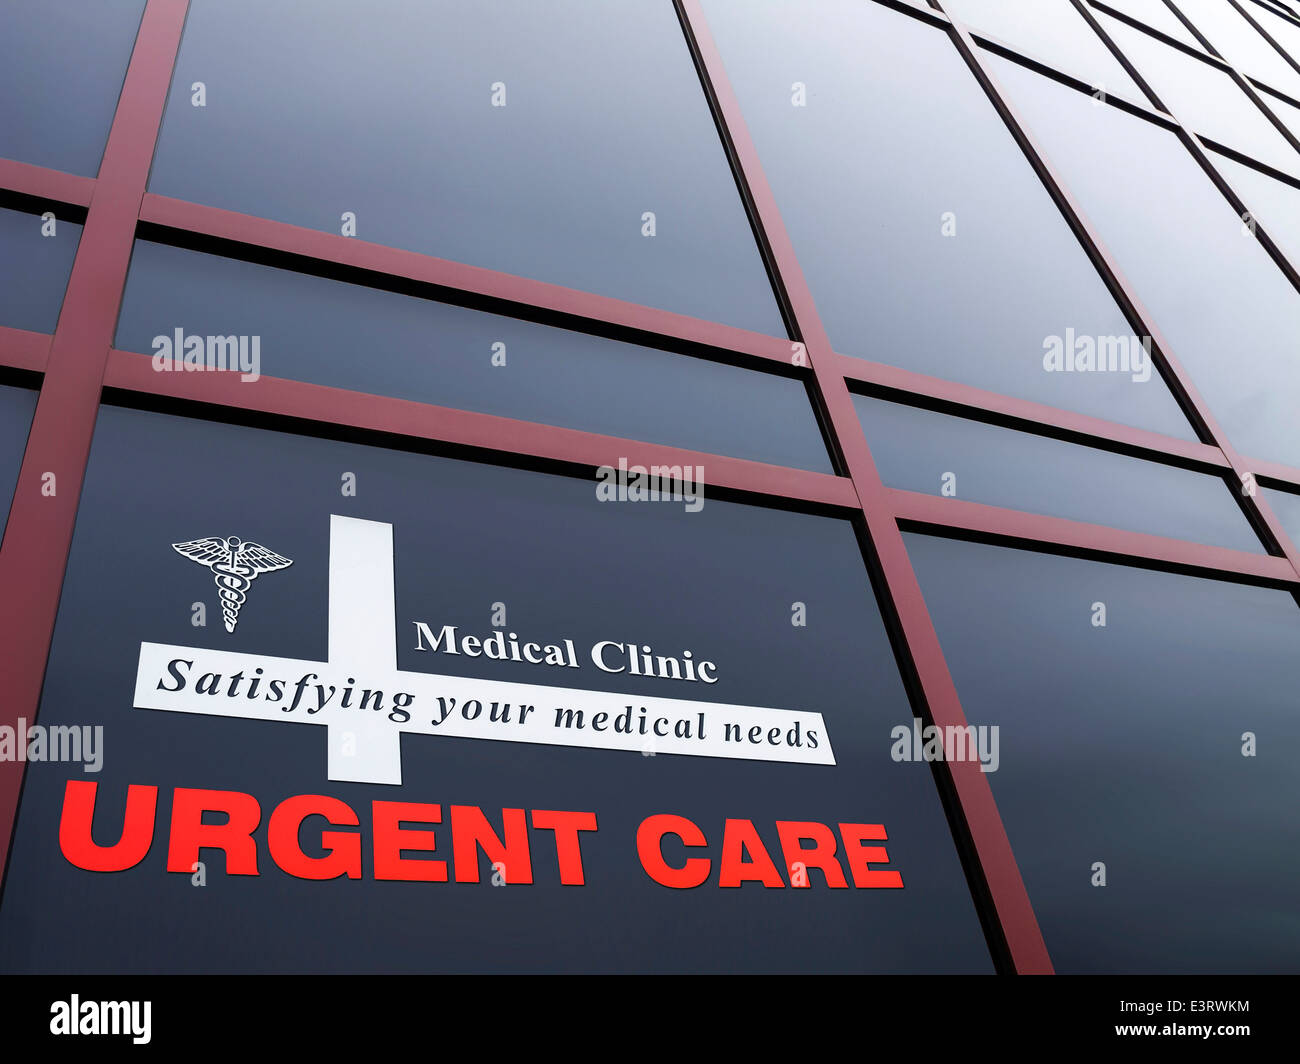 Urgent care building and sign. Were Medical care is given - Stock Image